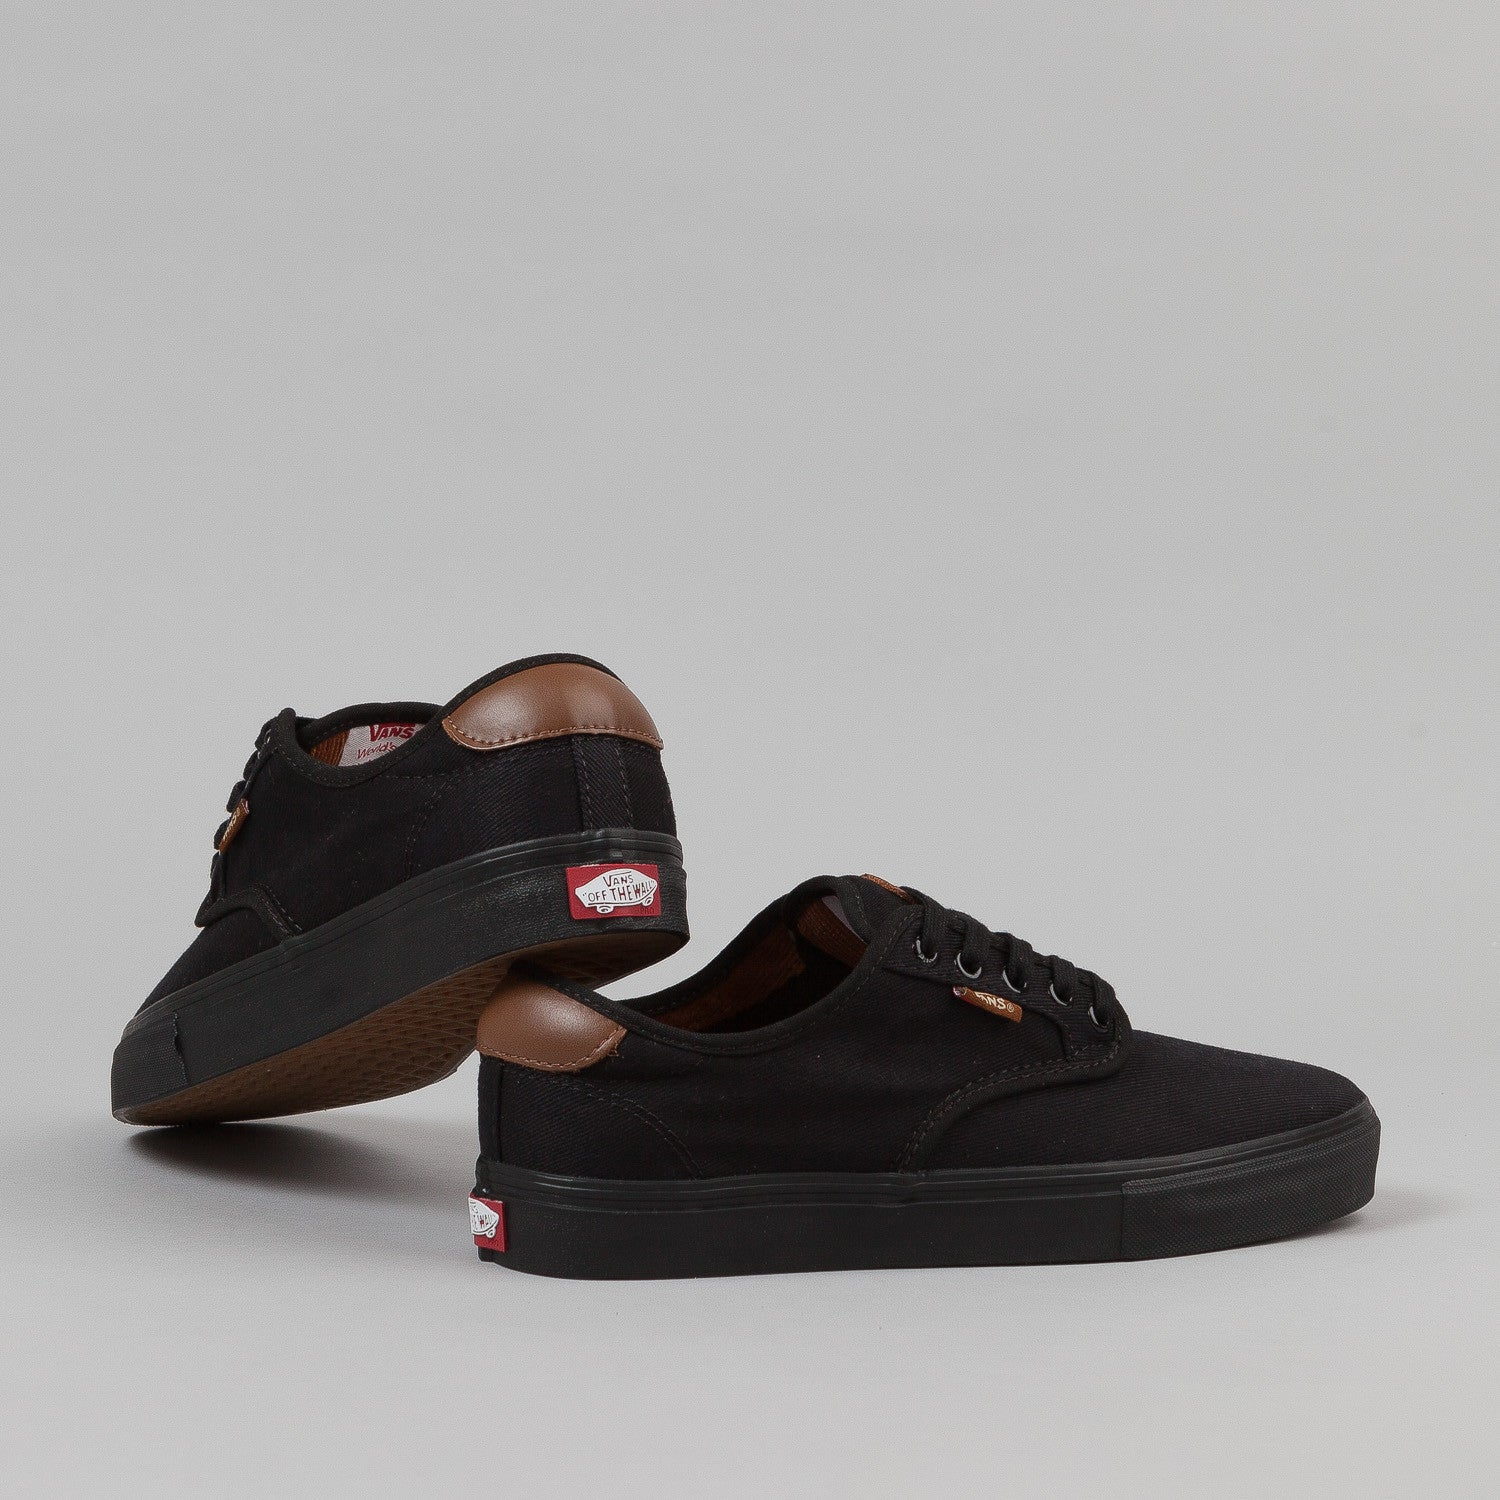 Vans Chima Ferguson Pro Shoes - Black / Black